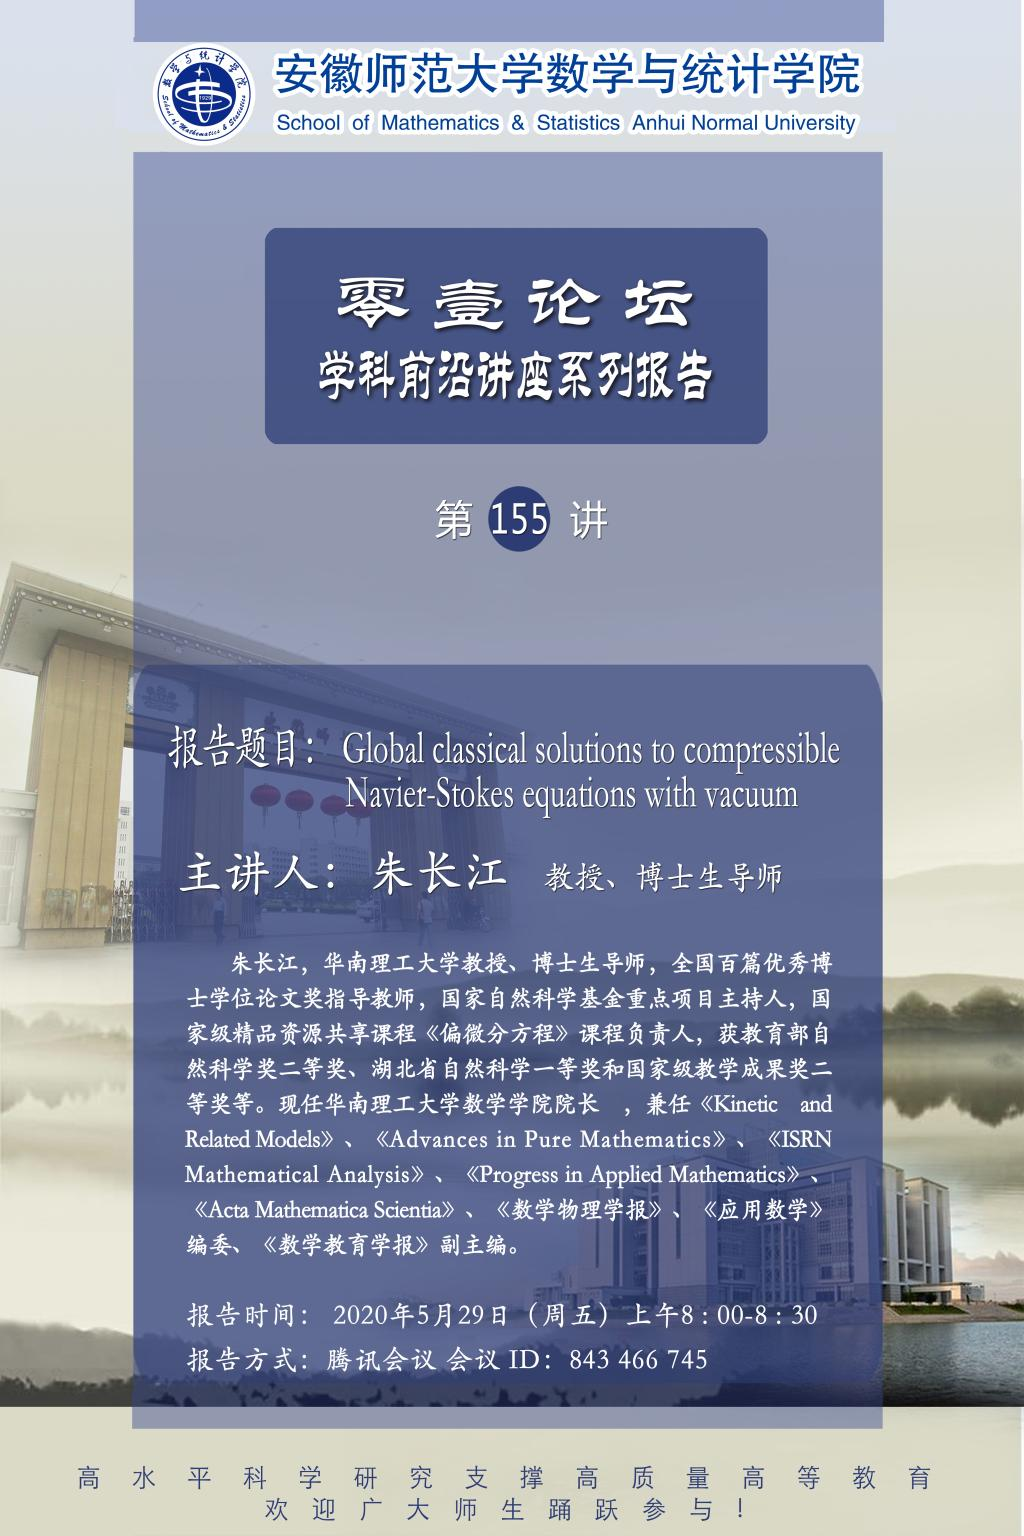 【学术预告】零壹论坛第155讲:Global classical solutions to compressible Navier-Stokes equations with vacuum